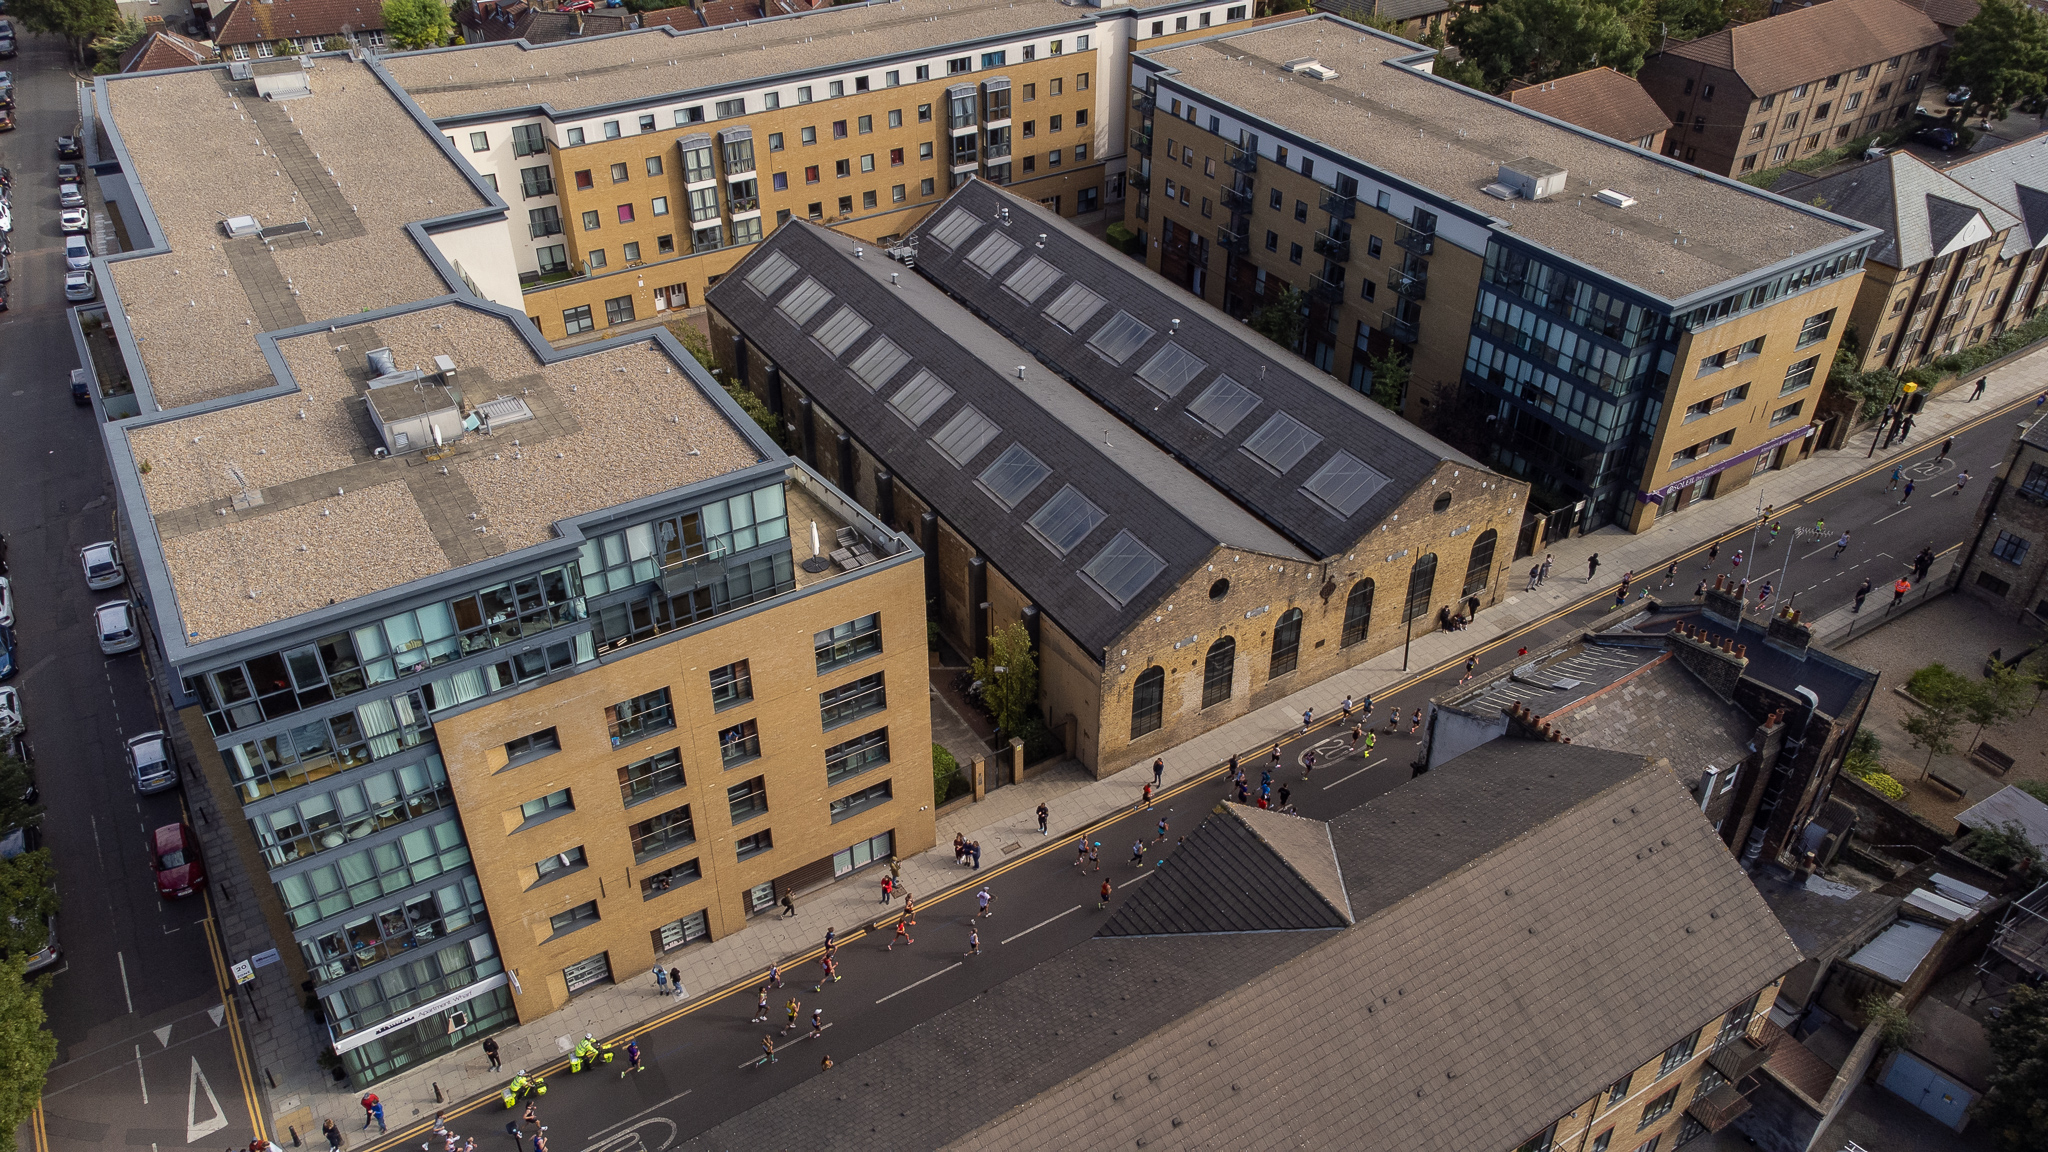 Aerial view of Craft Central taken by Jan Folga at The Forge during the London Marathon in October 2021